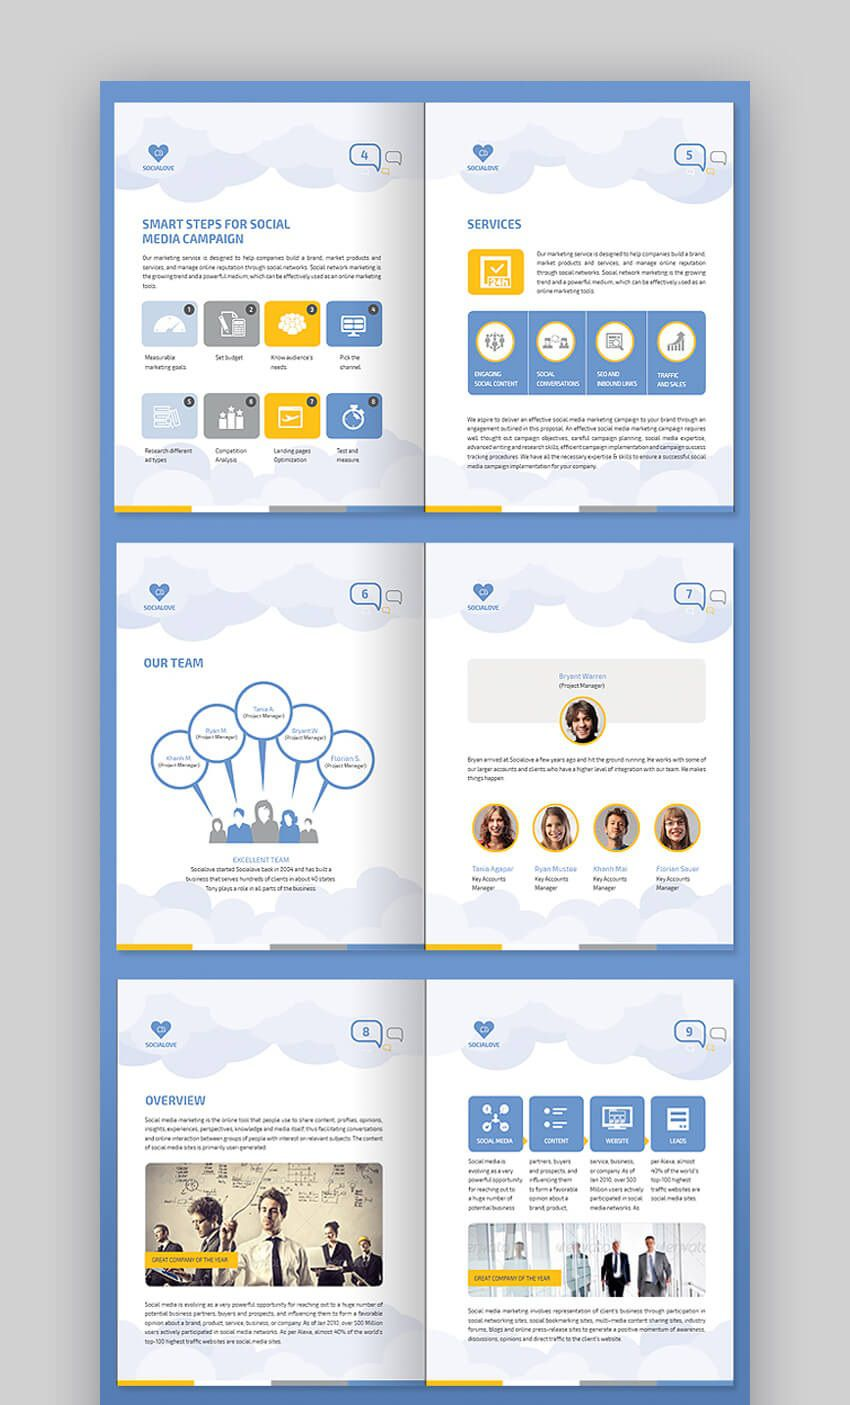 009 Awesome Social Media Proposal Template High Def  Ppt Marketing Word 2019Full